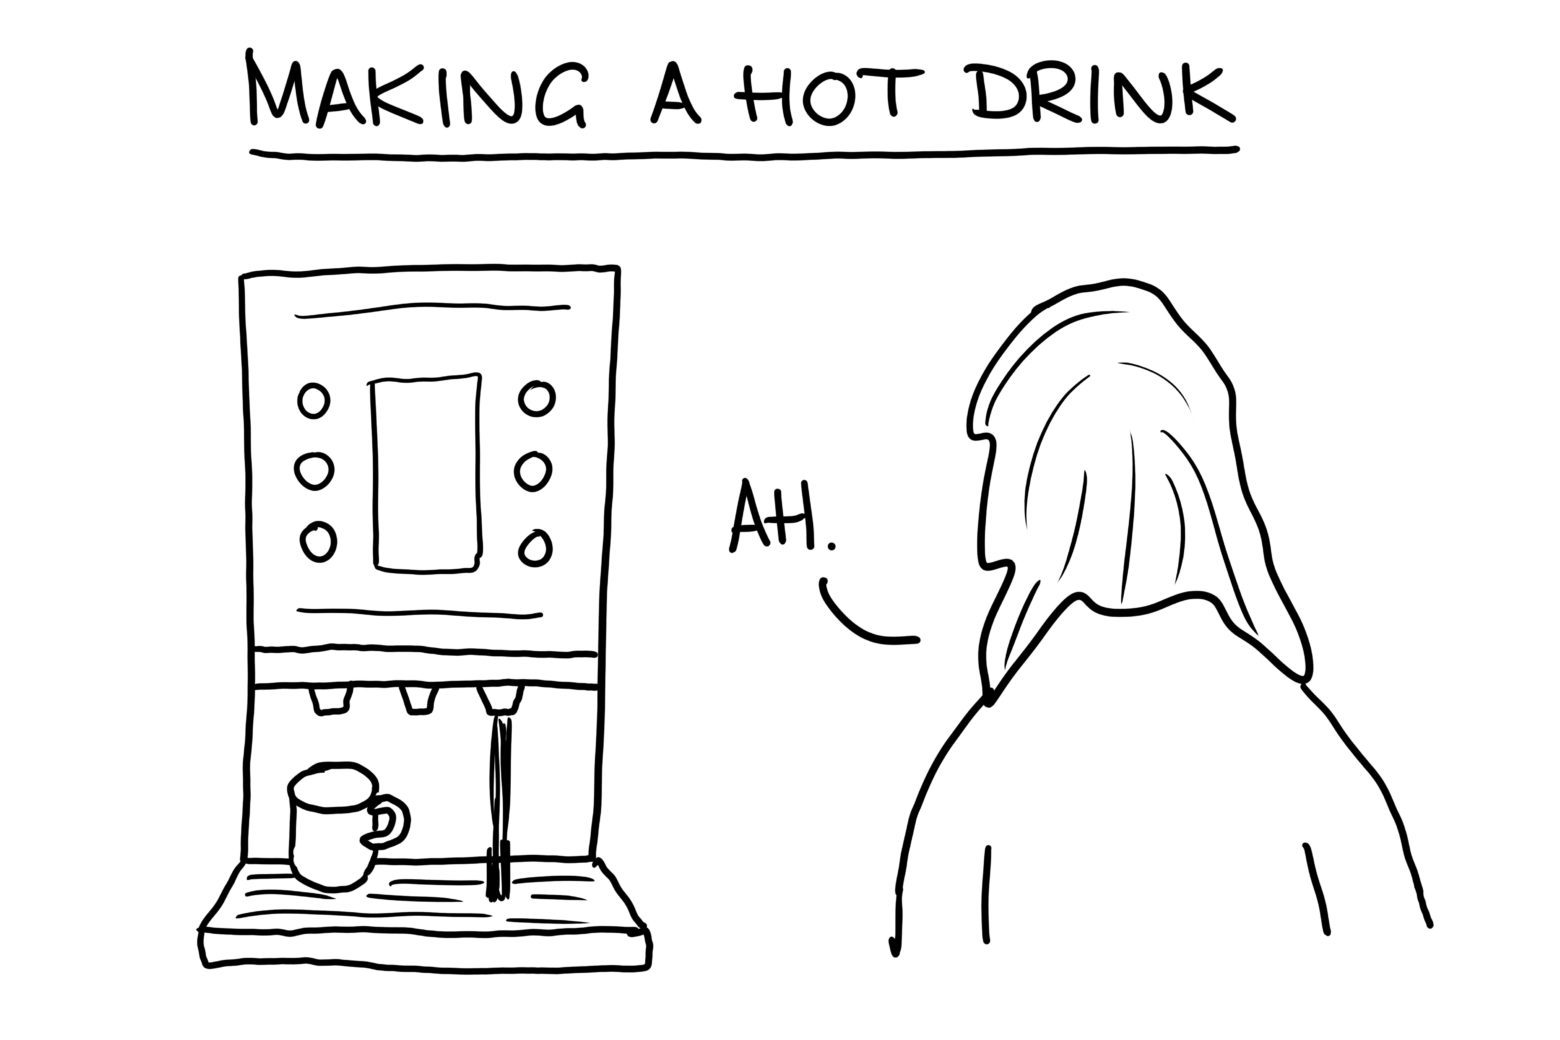 Making a hot drink